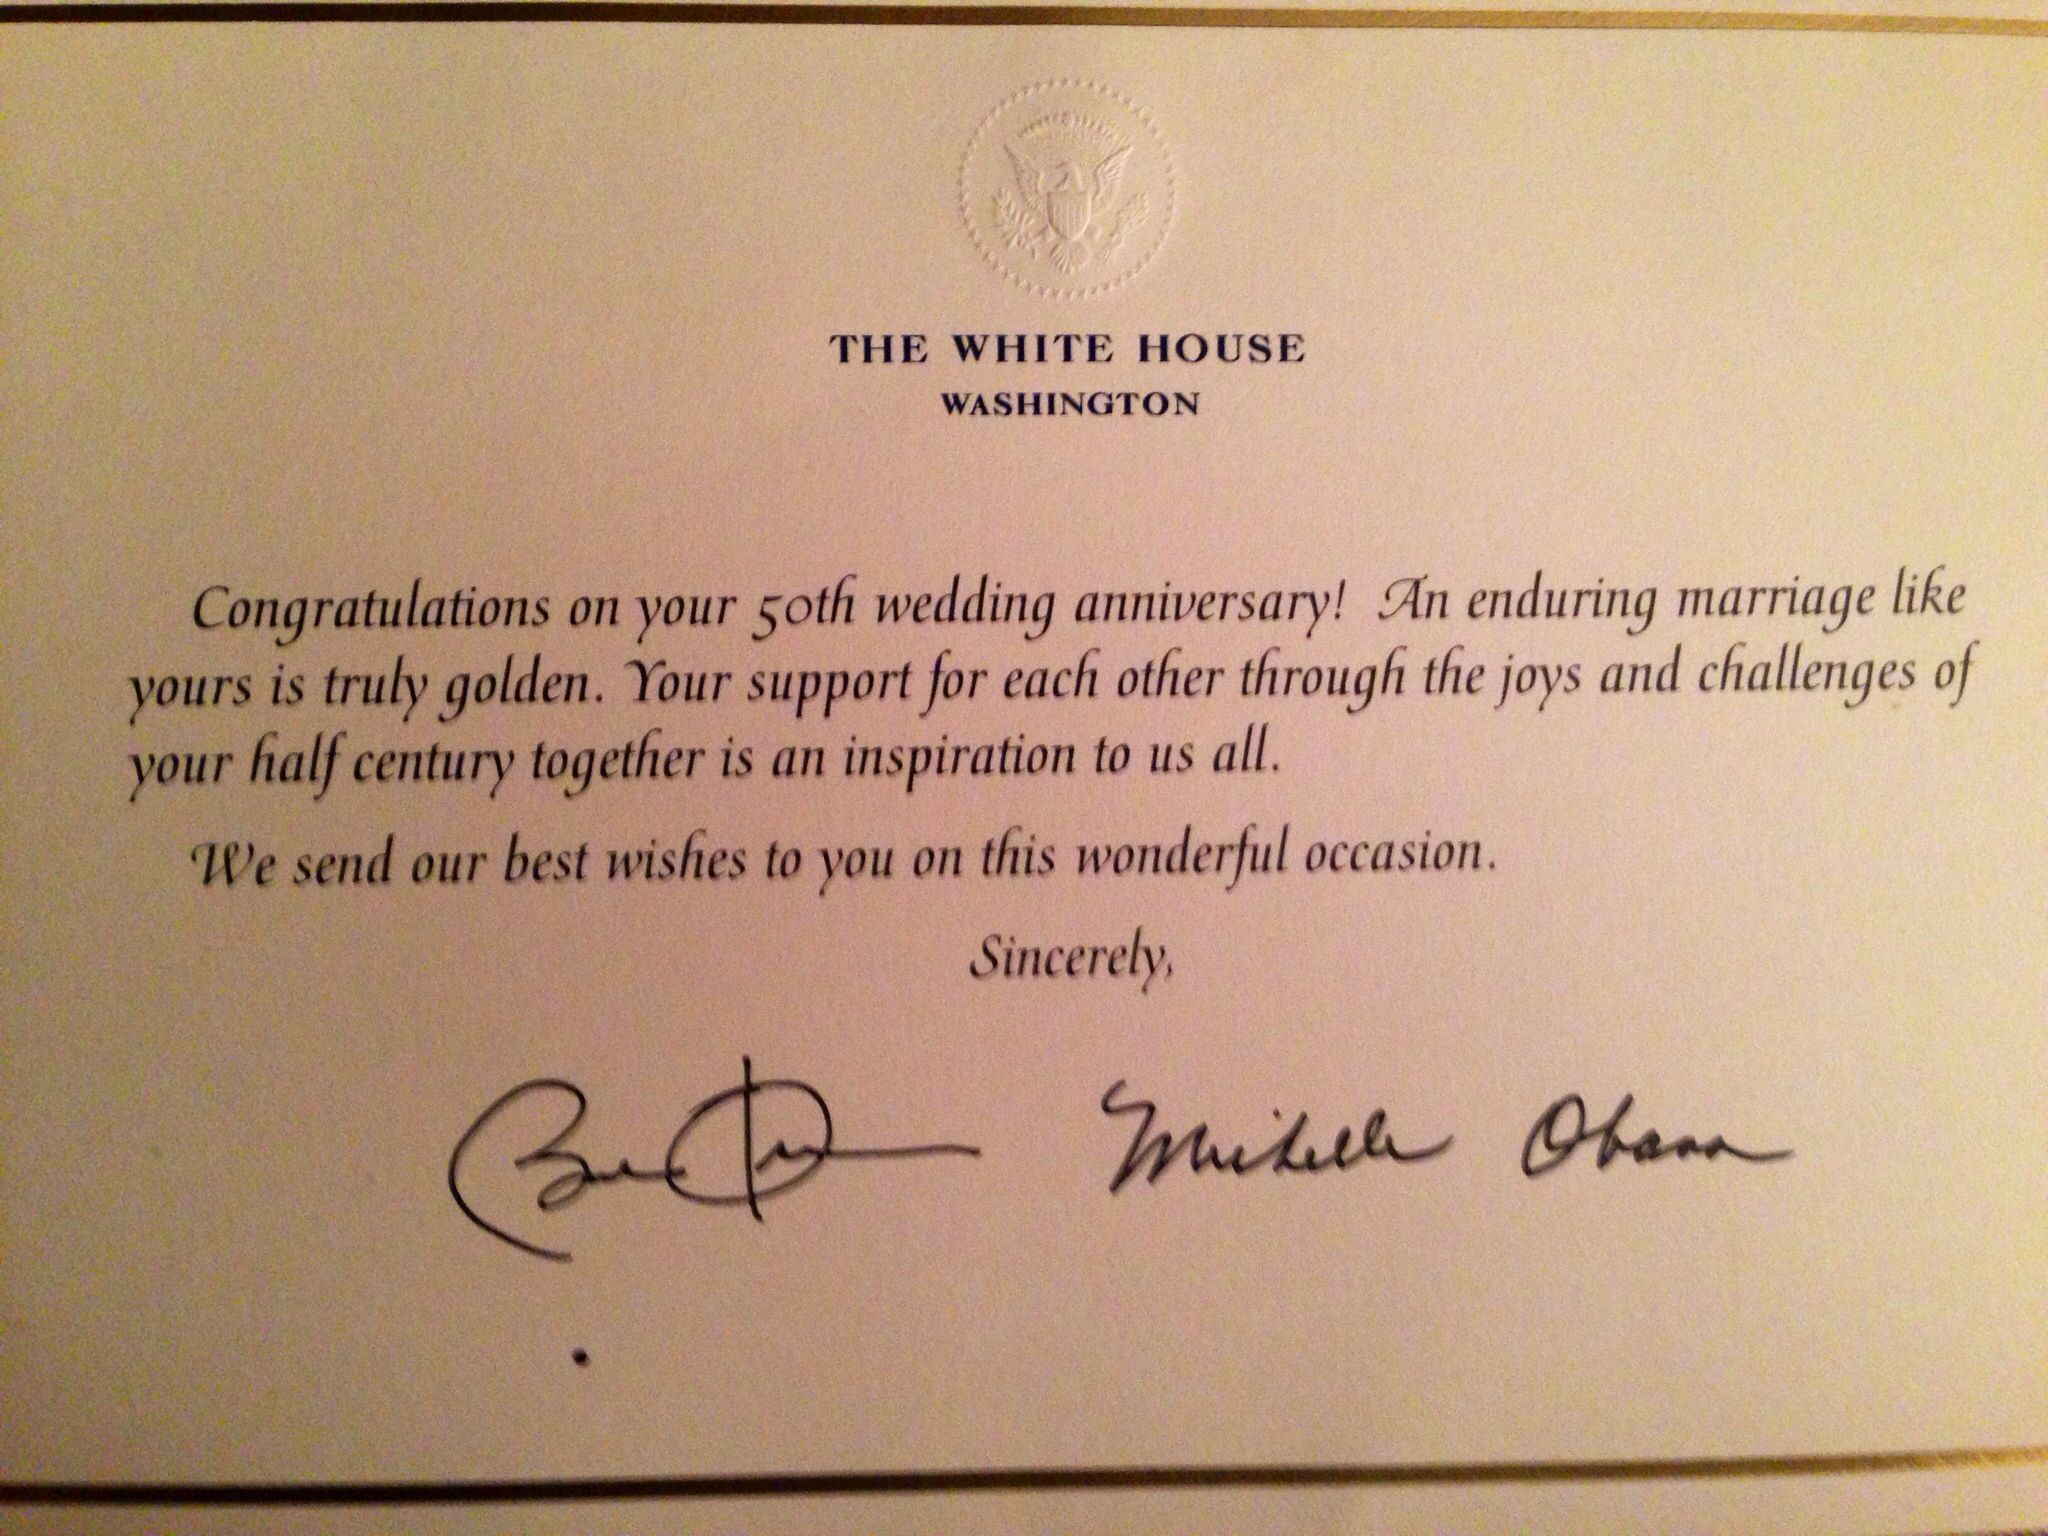 Mail invitations to president and first lady obama your governor